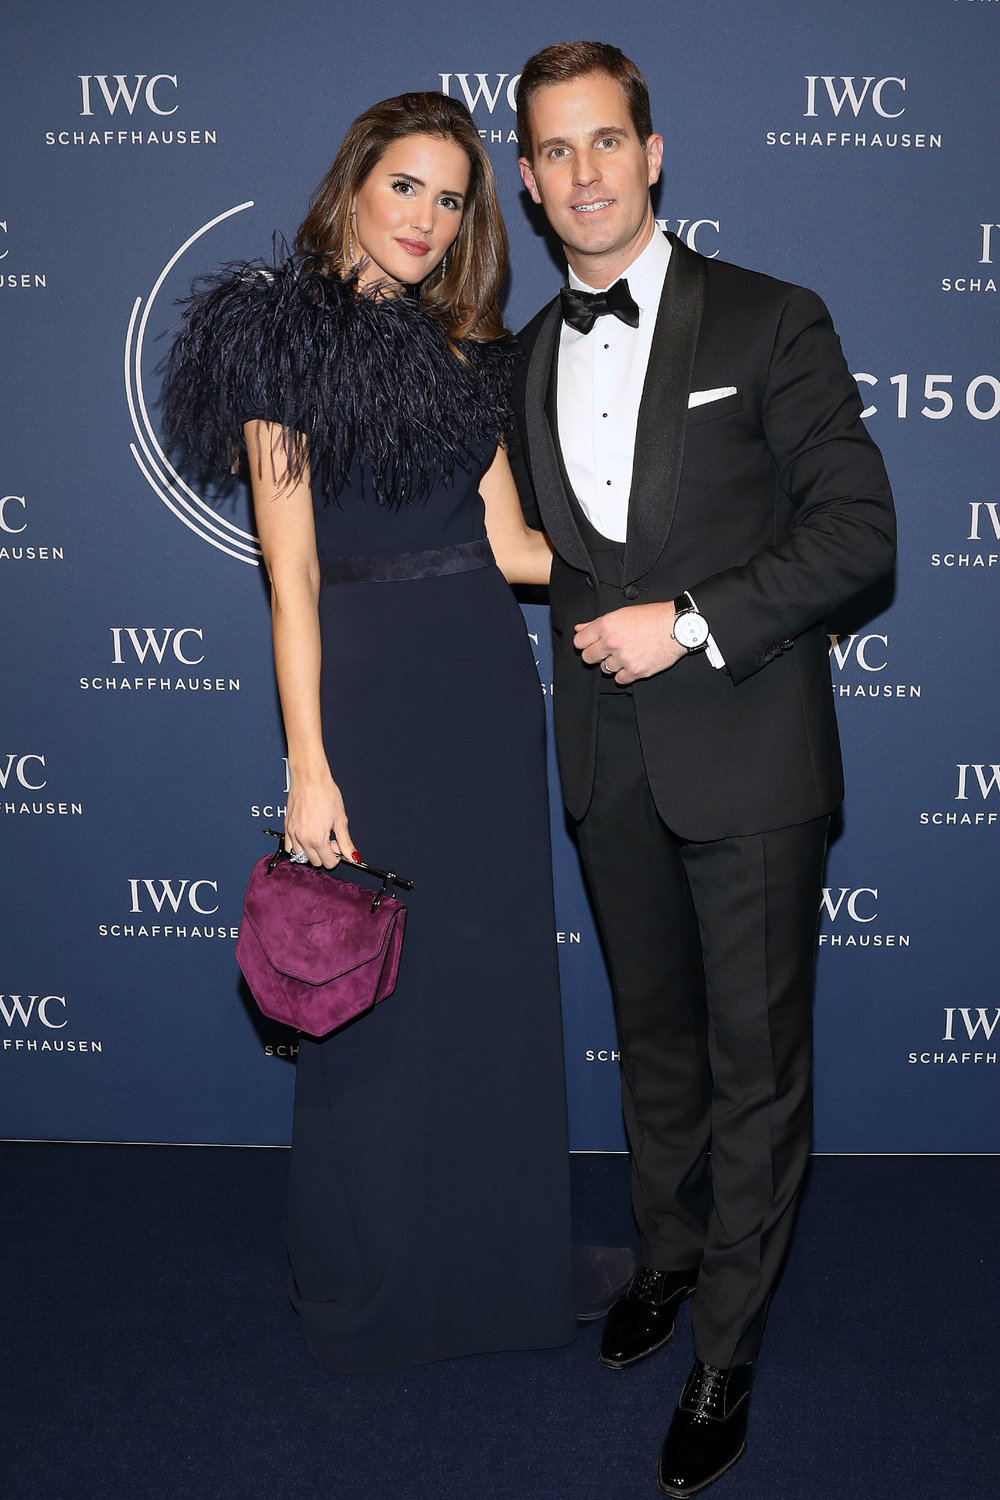 with Christian Graiger-Herr, CEO of IWC Schaffhausen